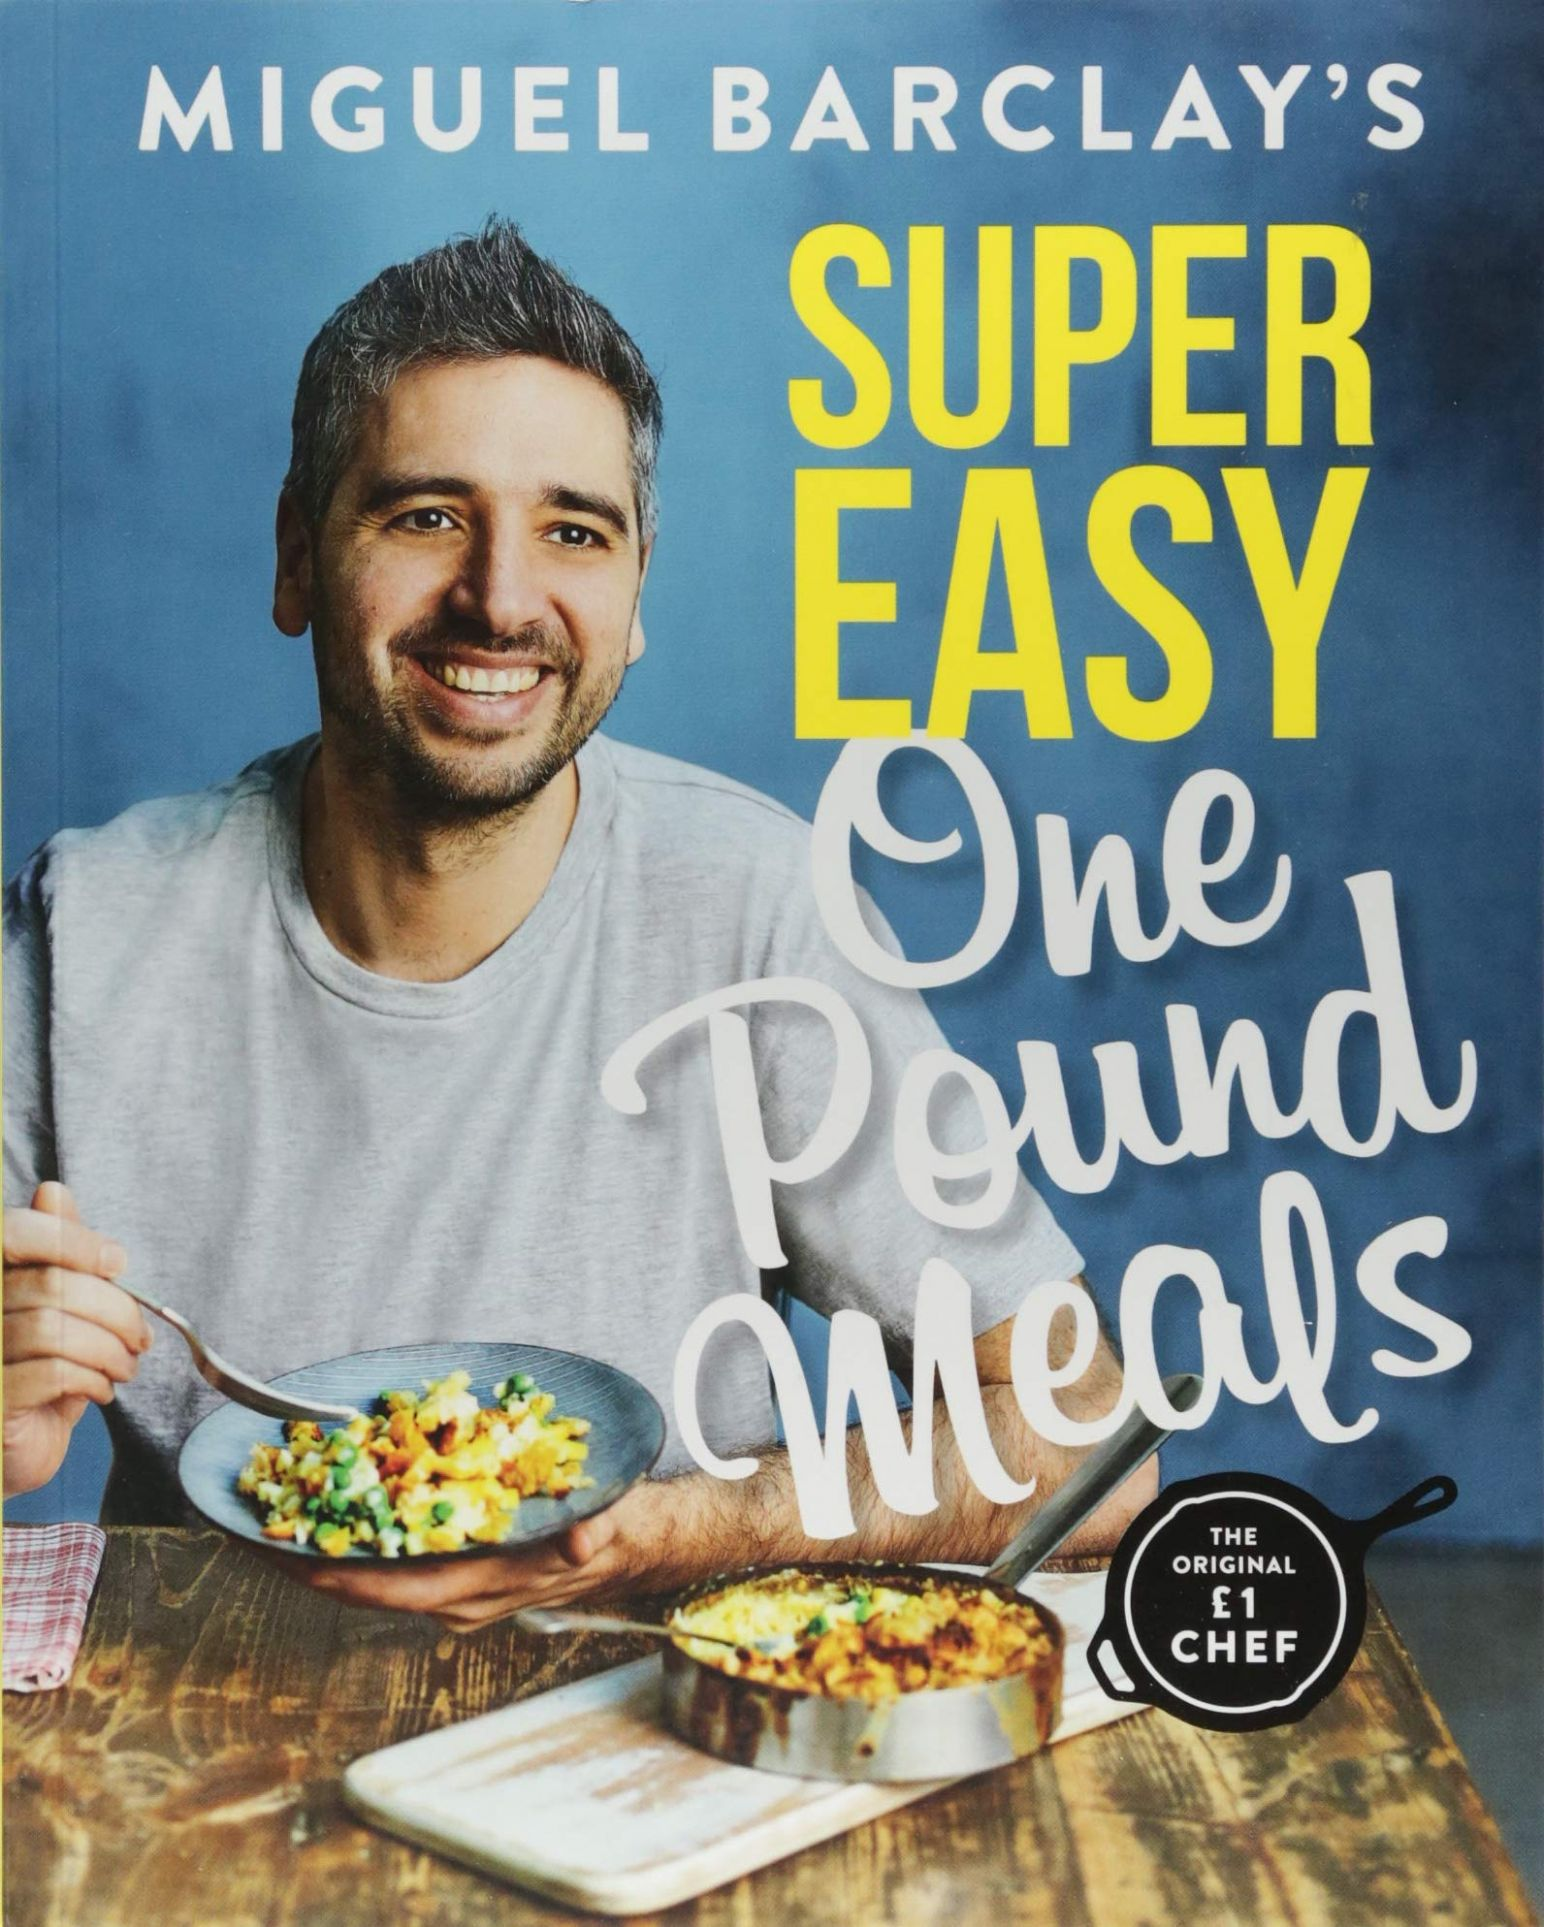 Miguel Barclay's Super Easy One Pound Meals: Amazon.co.uk: Barclay ...